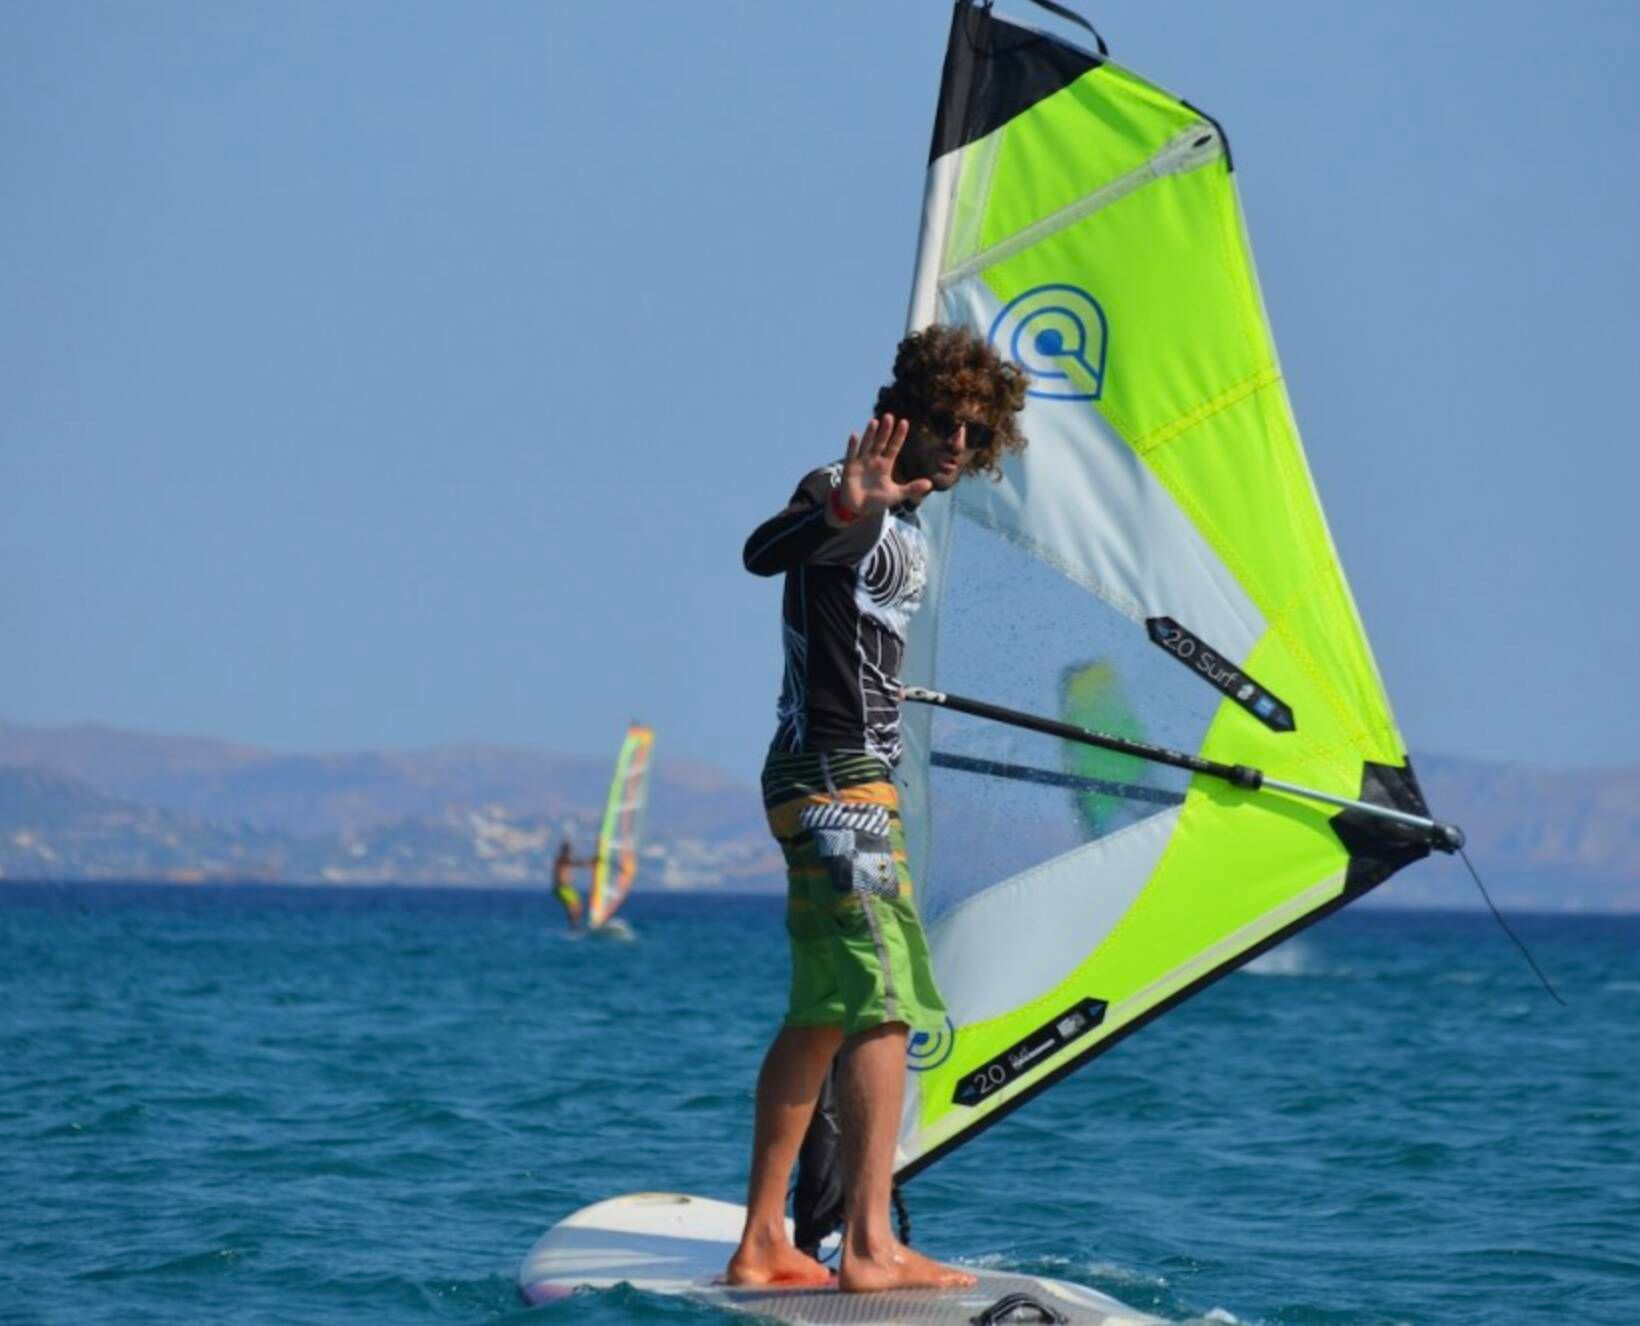 Instructor on windsurf board explaining what to do